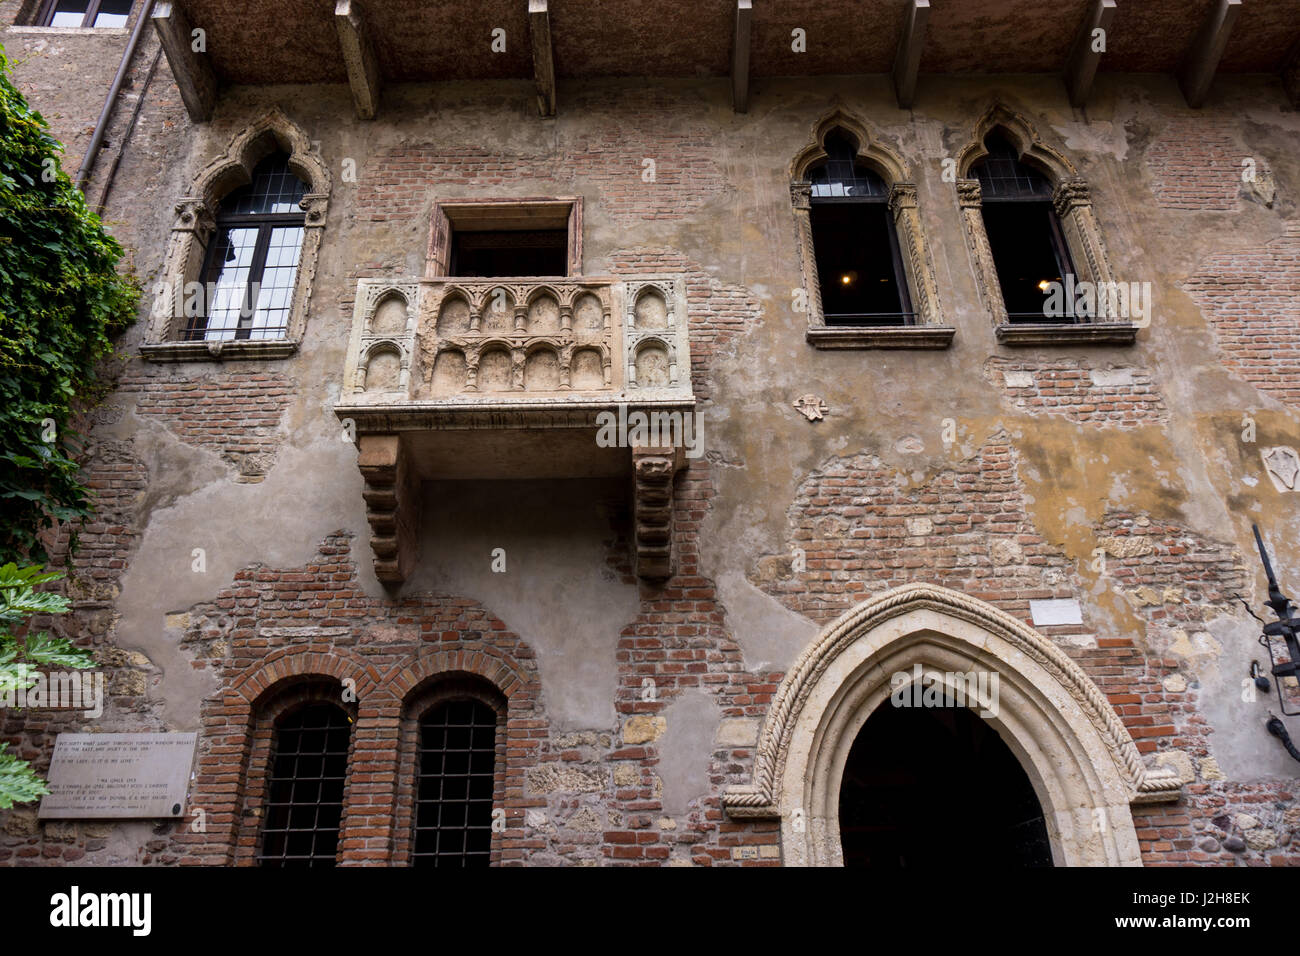 Casa di giulietta stock photos casa di giulietta stock for Famous balcony